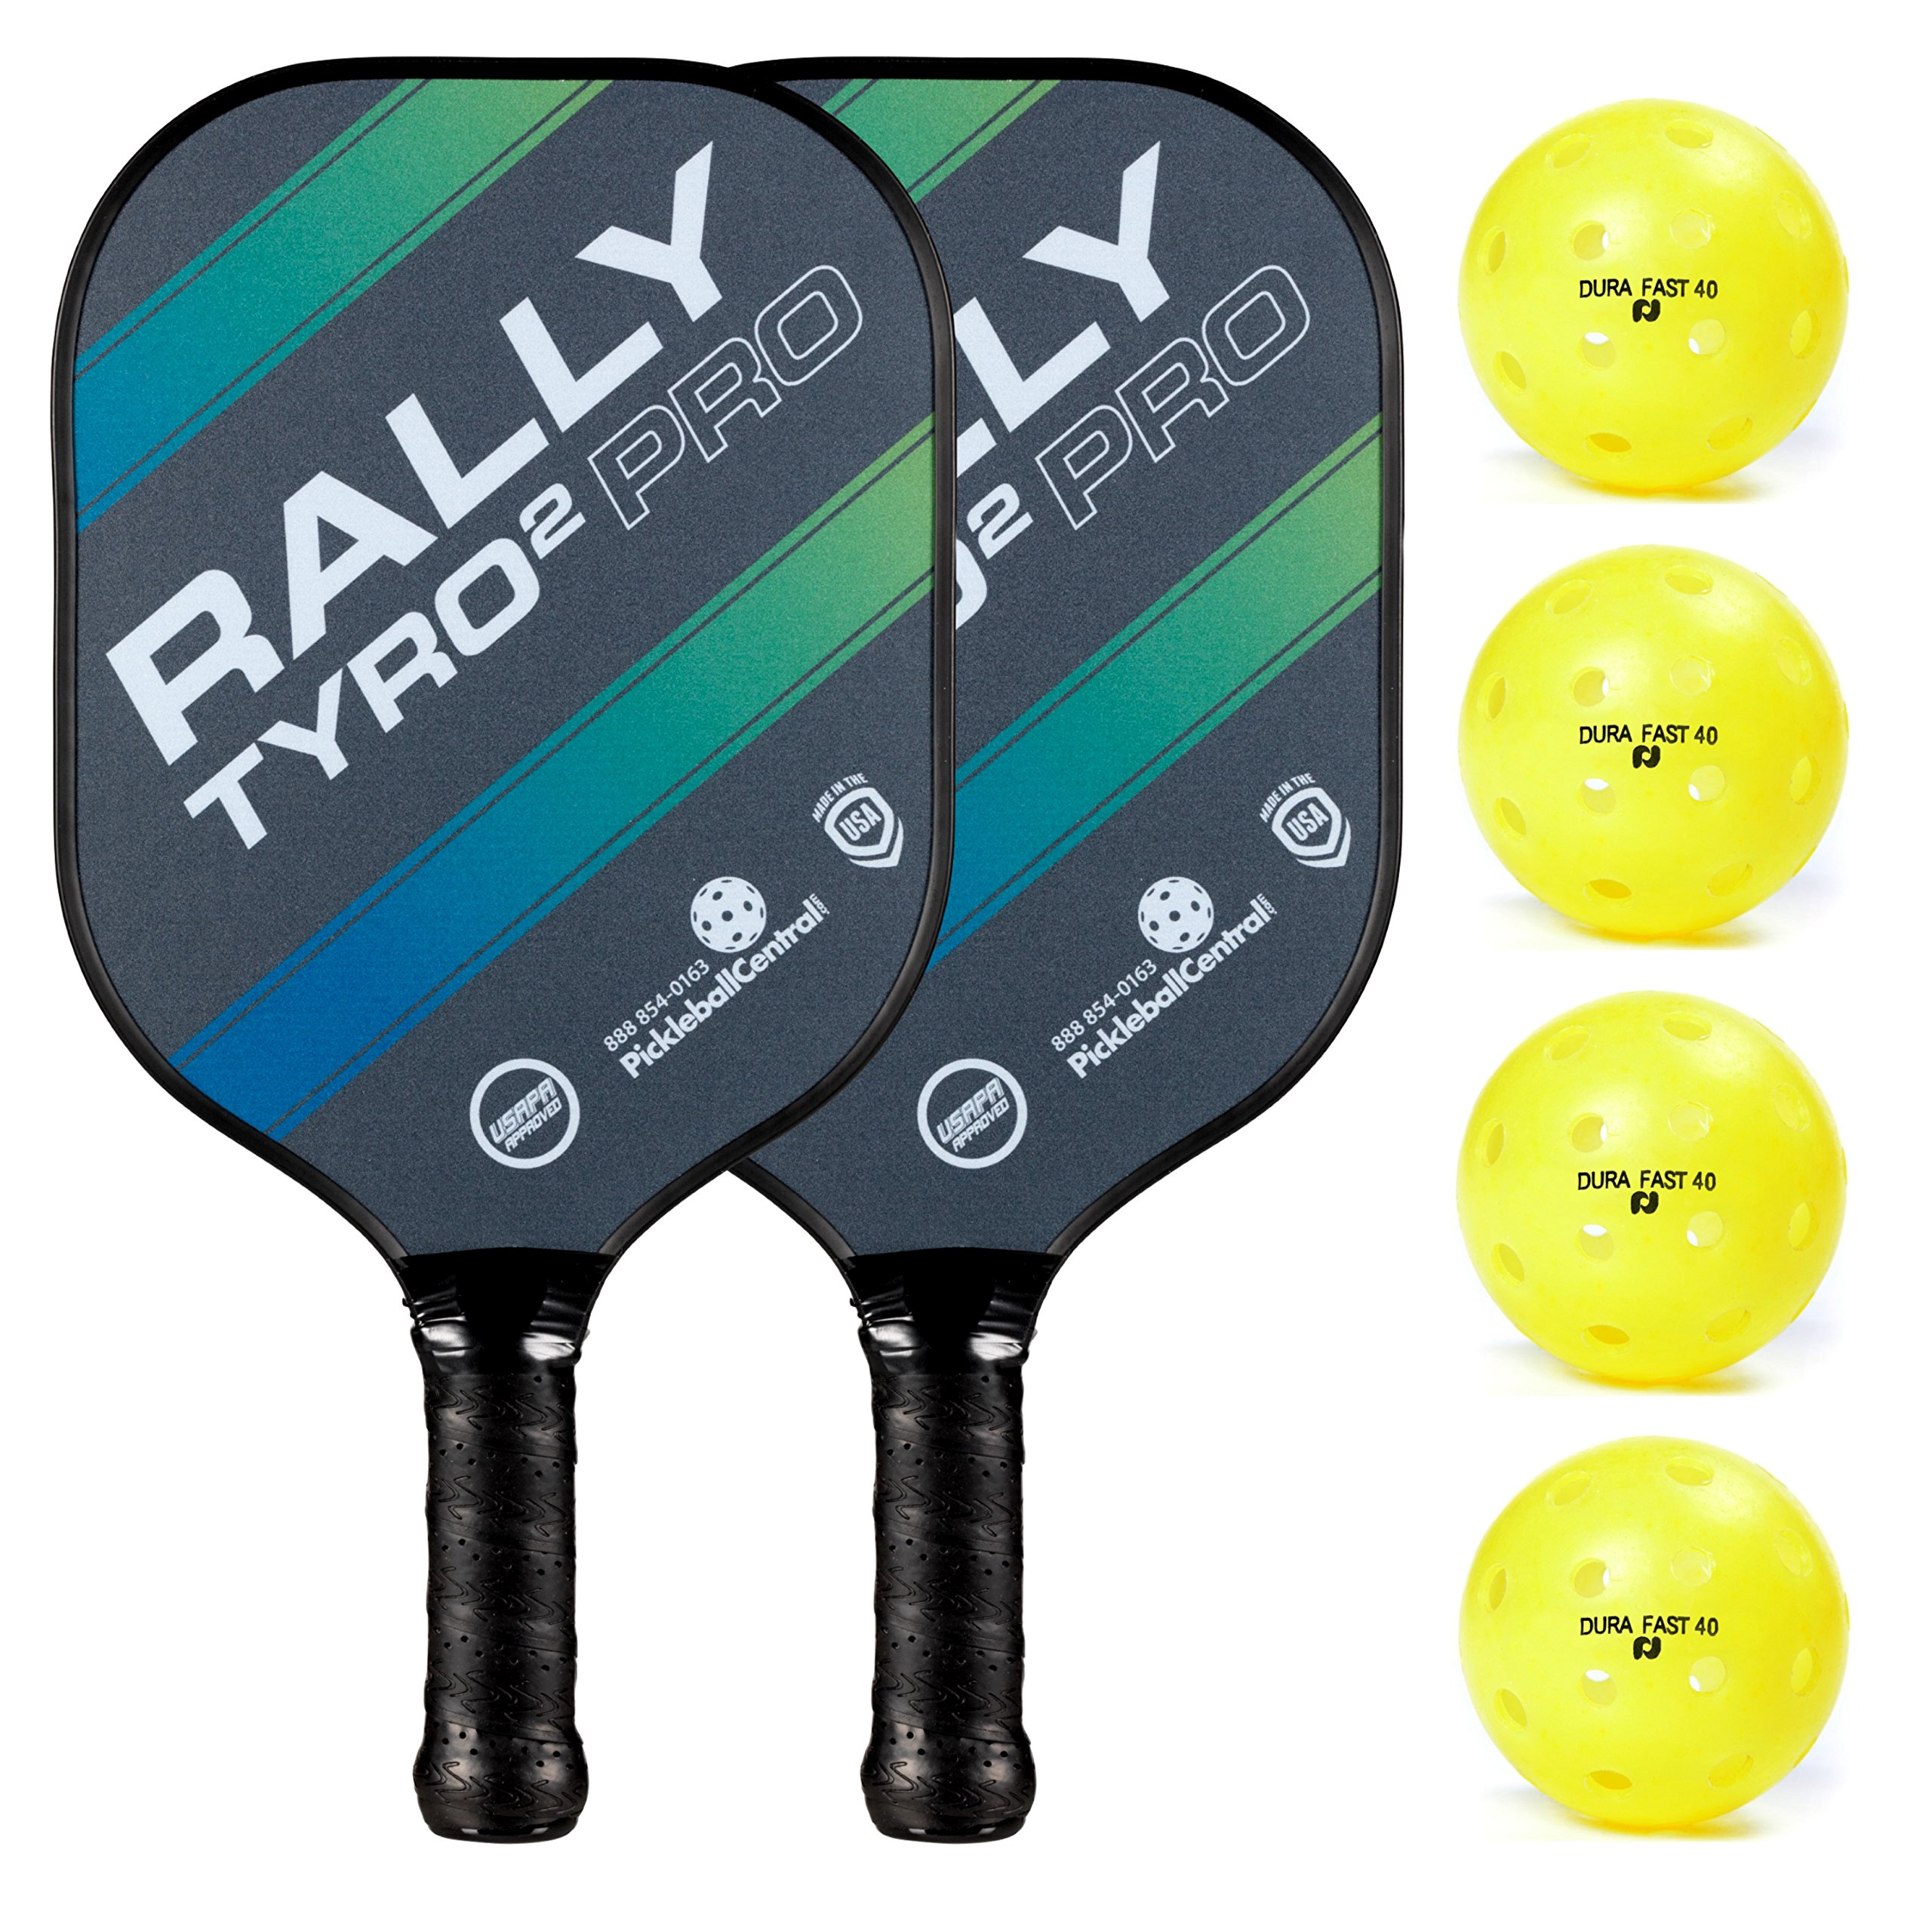 Rally Tyro 2 Pro Pickleball Paddle (2 Paddles / 4 Ball Bundle - Ocean Blue) by PickleballCentral (Image #1)